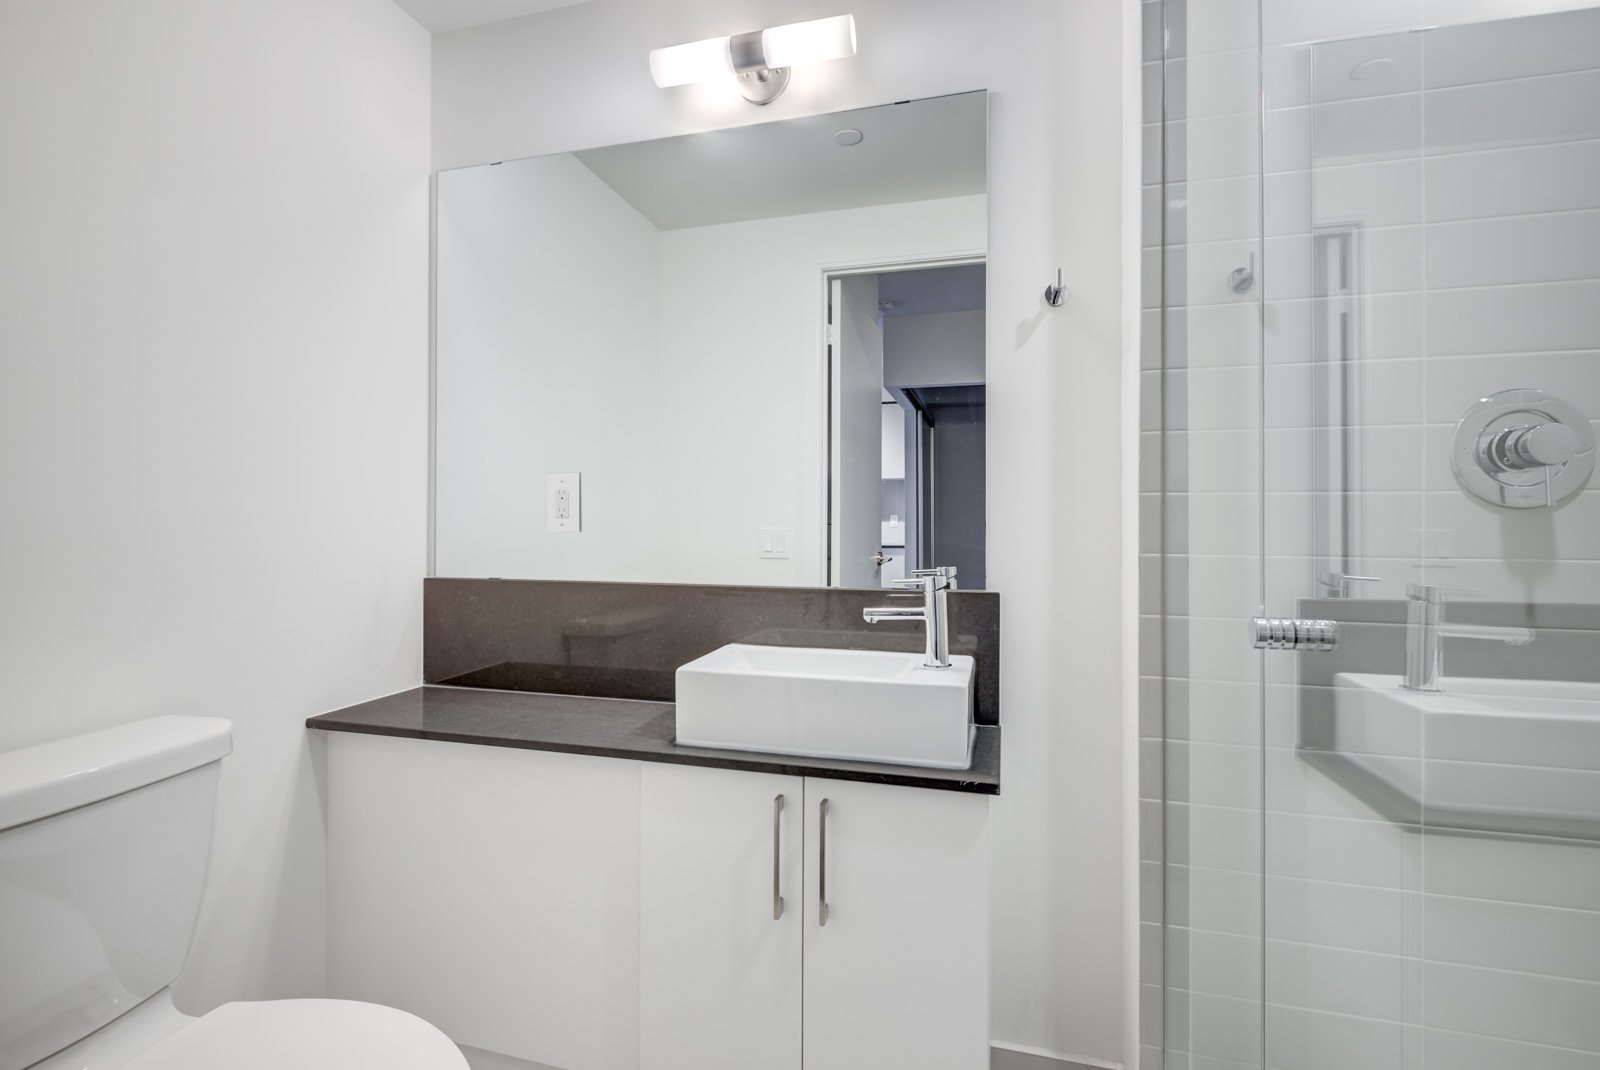 Second bathroom with standing glass shower enclosure, large vanity and mirror.